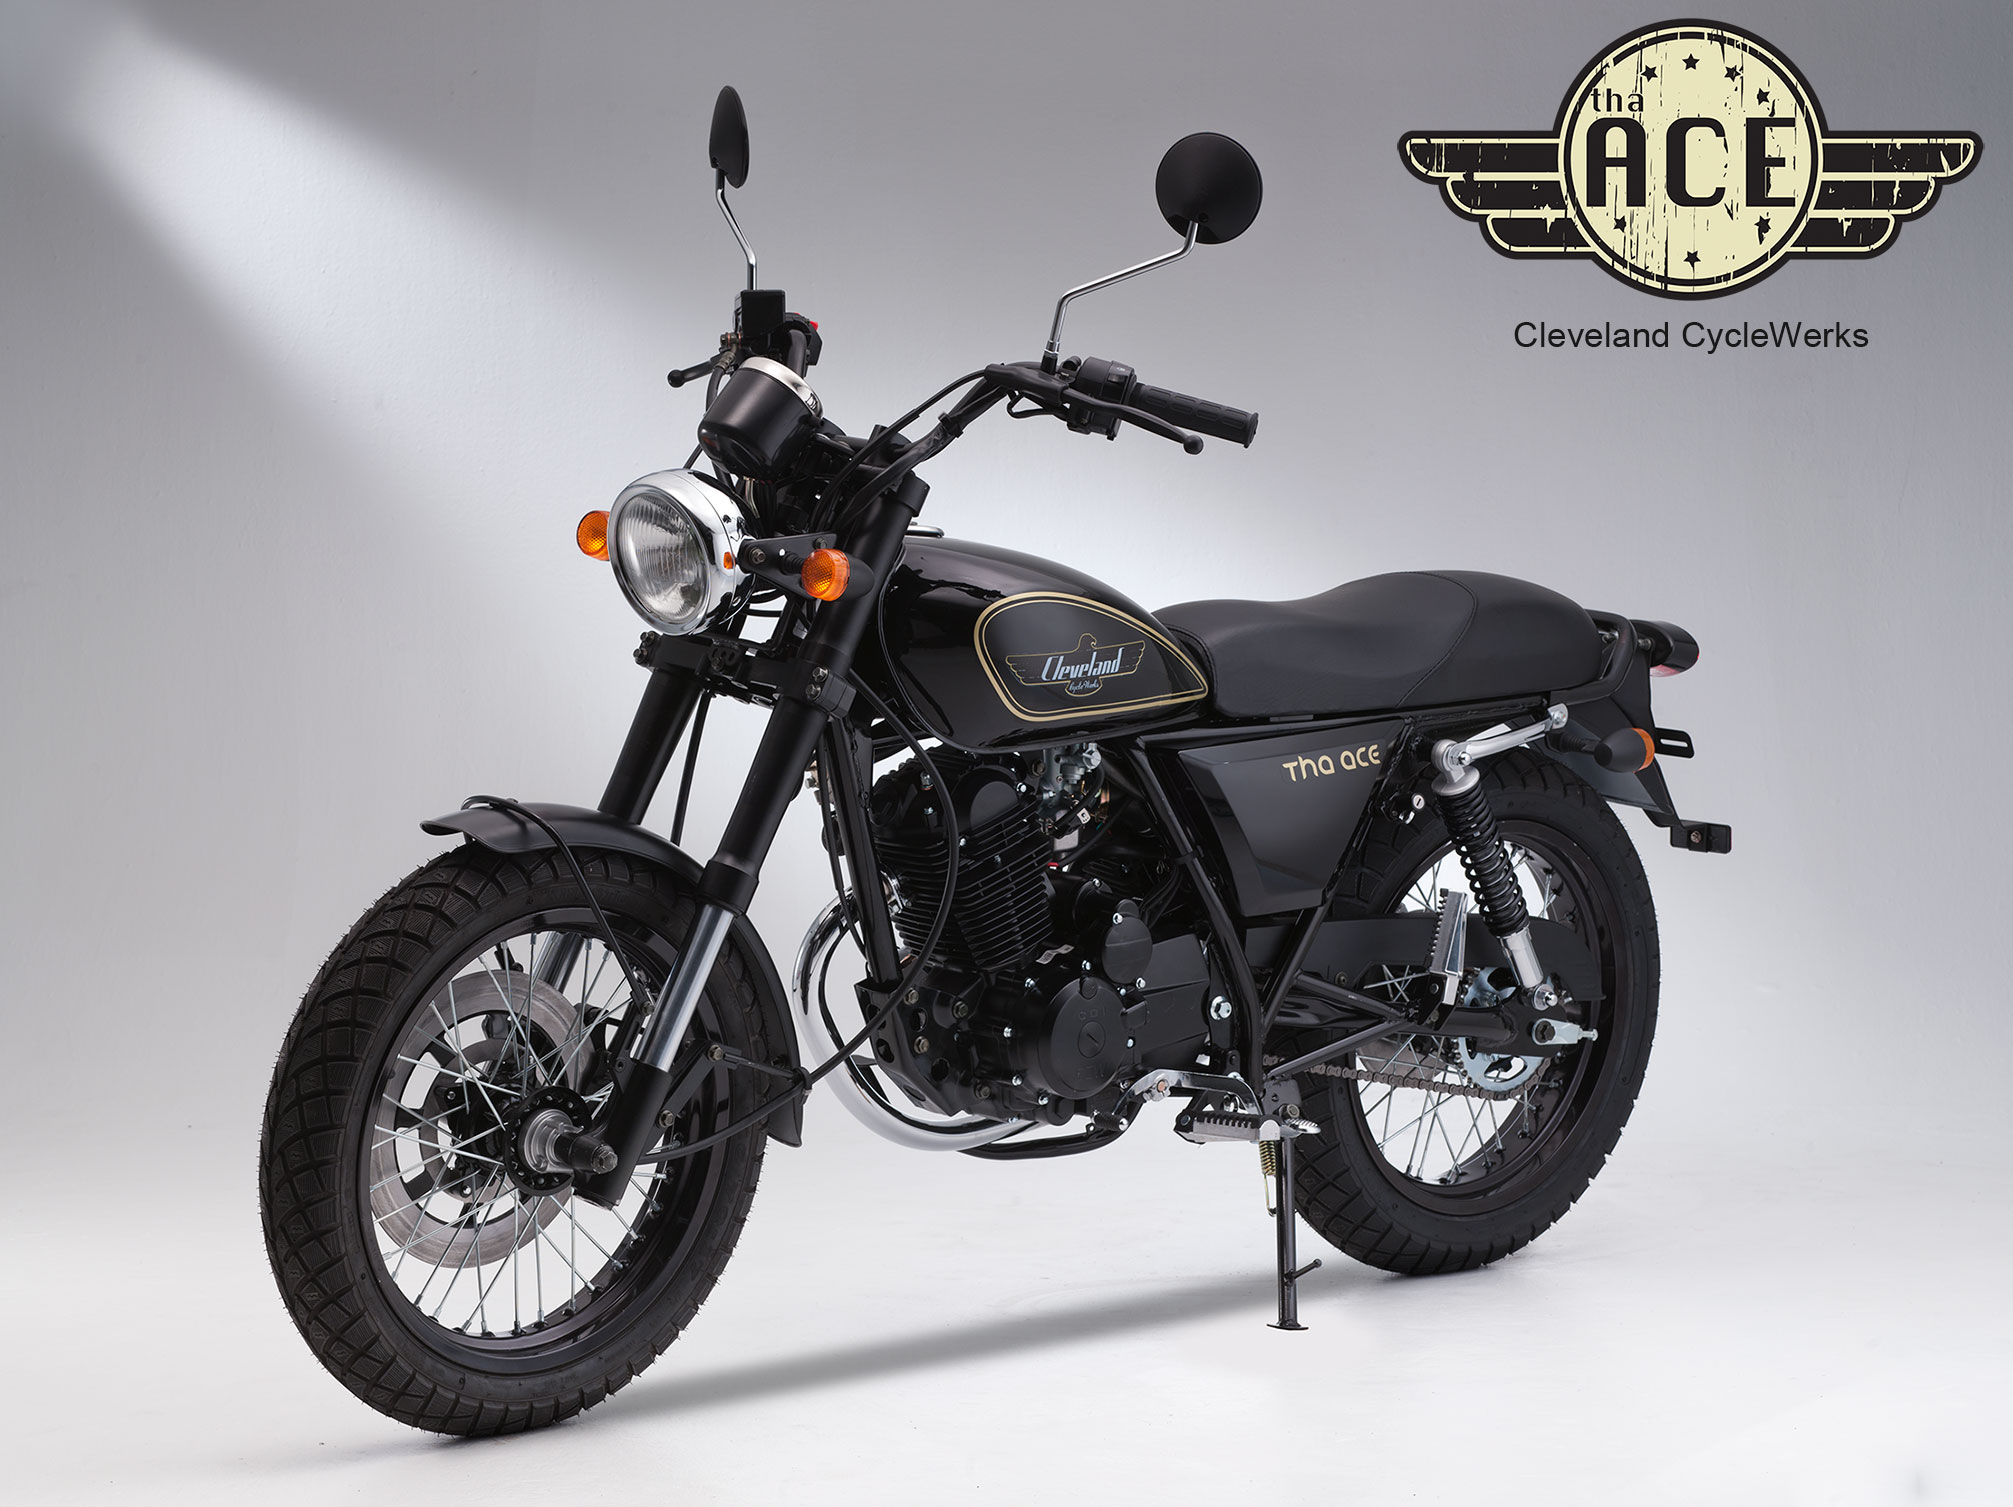 2013 cleveland cyclewerks ace deluxe review